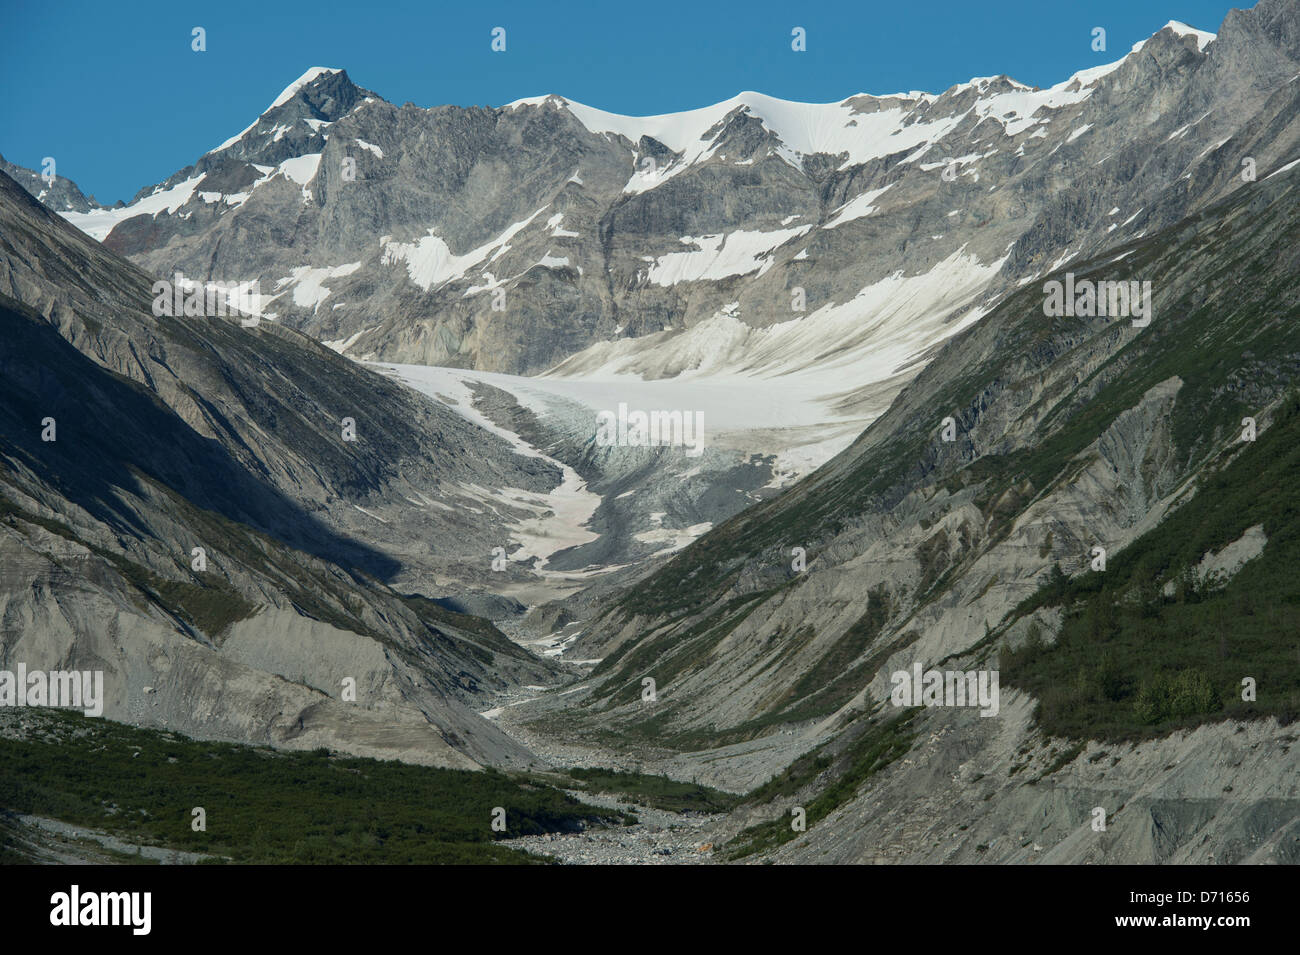 View Of Mountain Landscape With Terminal Moraine And Lateral Moraines In Glacier Bay National Park